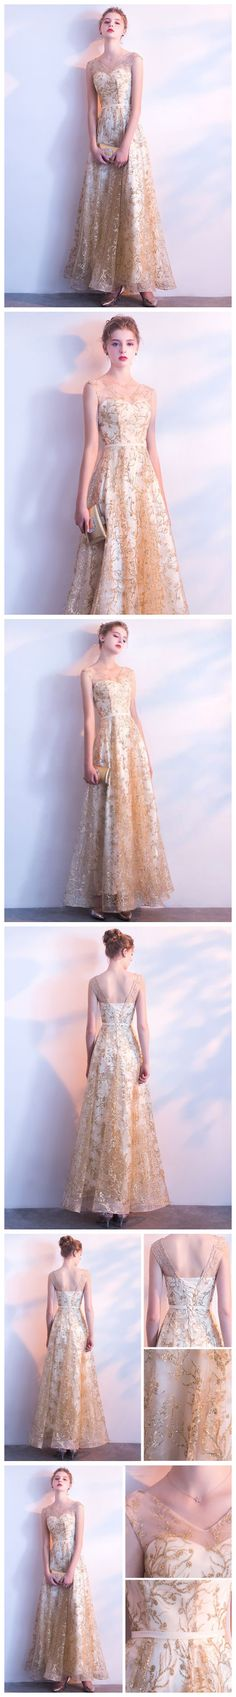 GOLD PROM DRESS,LONG PROM DRESS,A-LINE PROM DRESS, BEAUTIFUL PROM DRESS,V-NECK PROM DRESS,TULLE CHAMPAGNE PROM DRESS,EVENING DRESS AM889 #amyprom  #fashion #party #evening #chic #promdress #promdresslong #longpromdress #eveningdress  #formaldress #gold